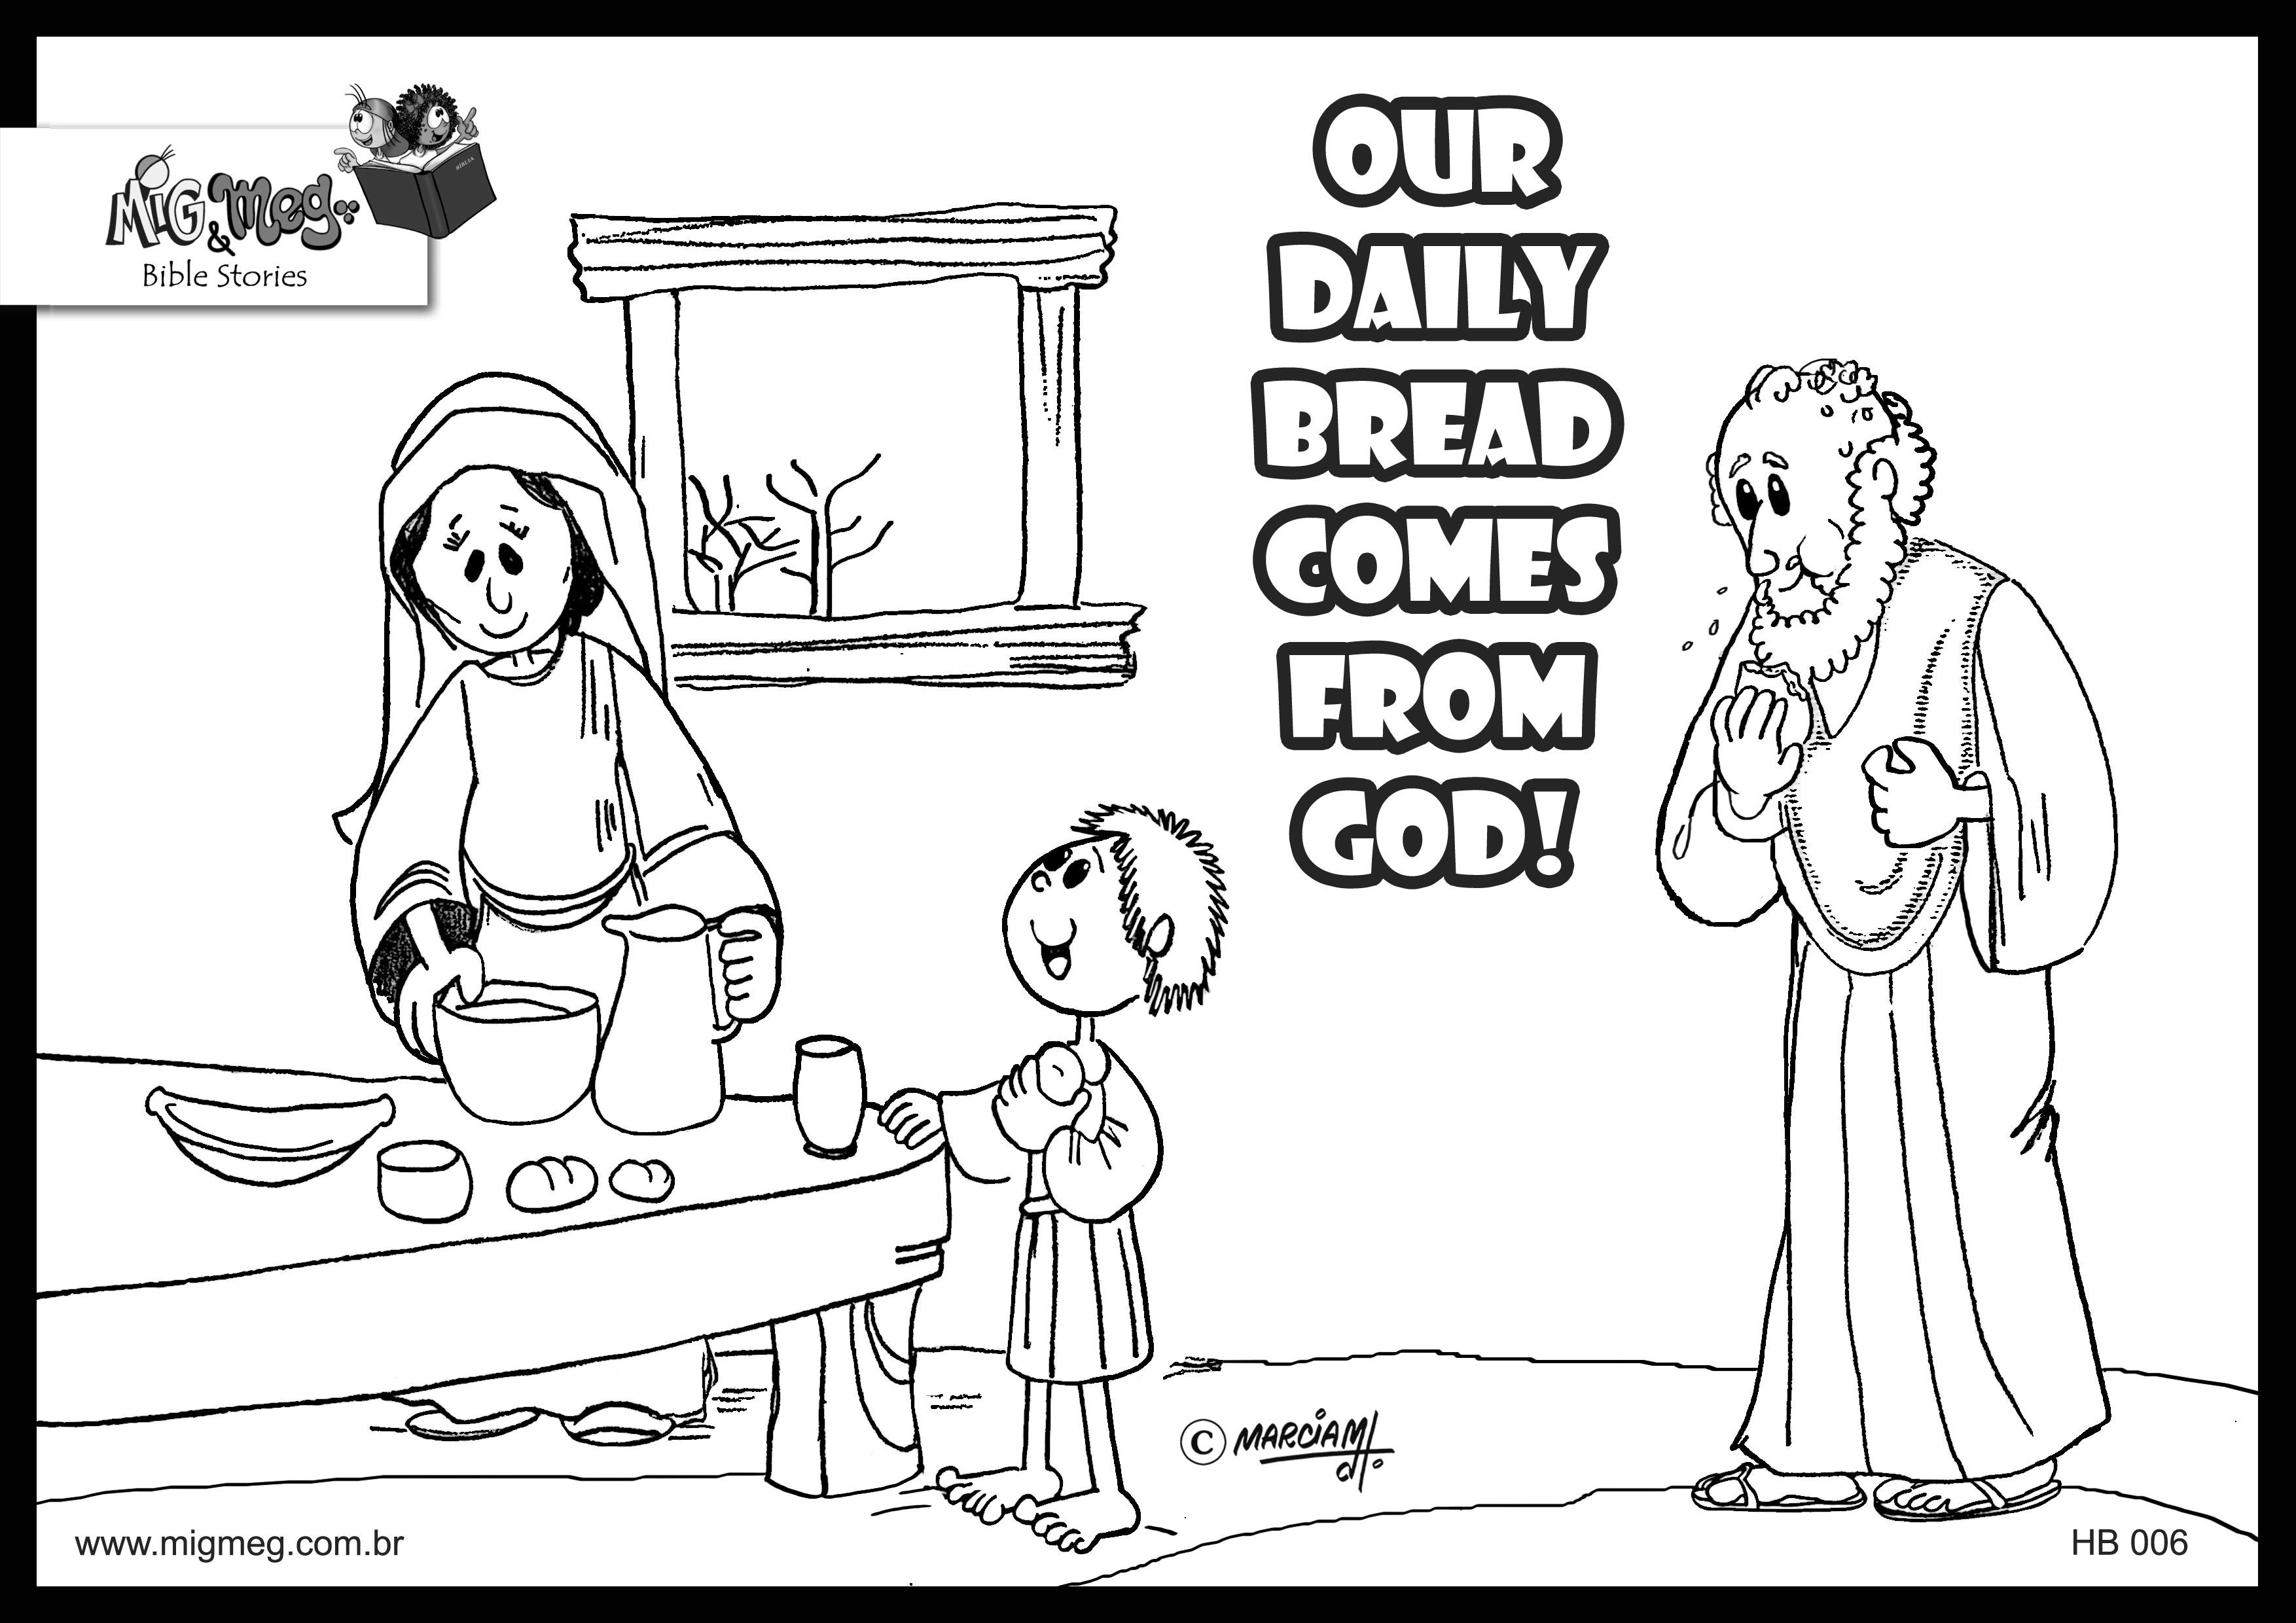 the ojays - Elijah Bible Story Coloring Pages